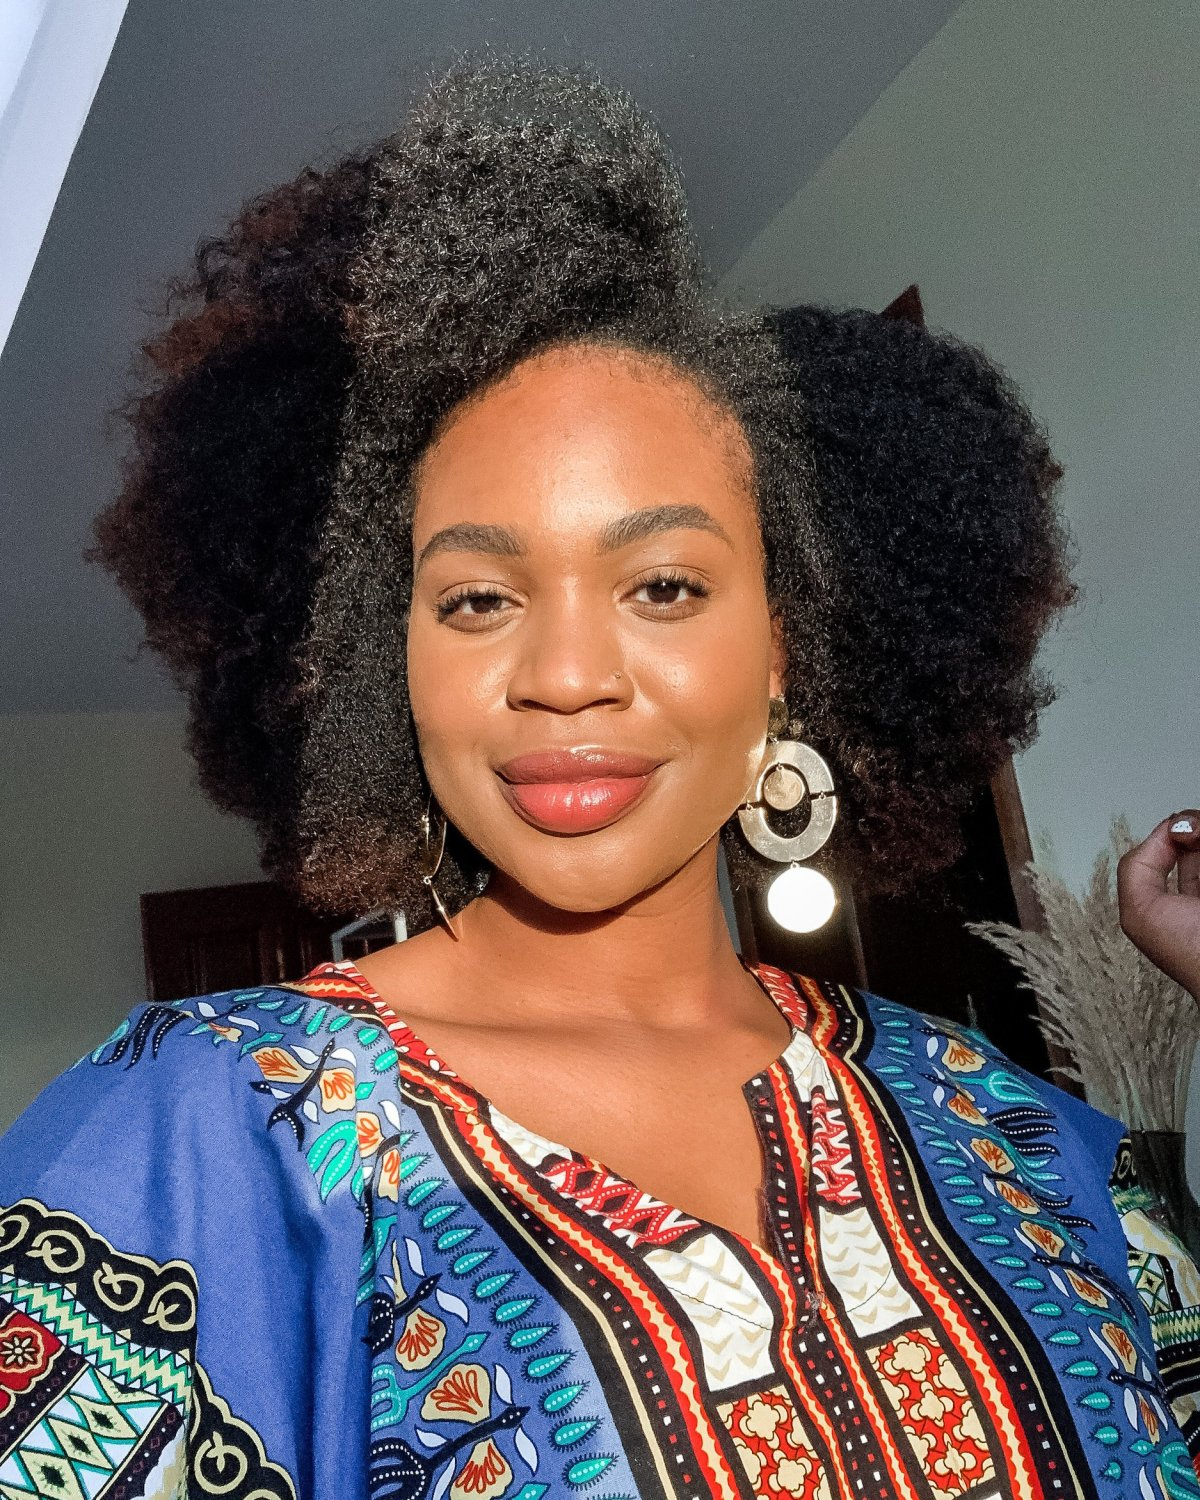 natural hair gold statement earrings and a dashiki